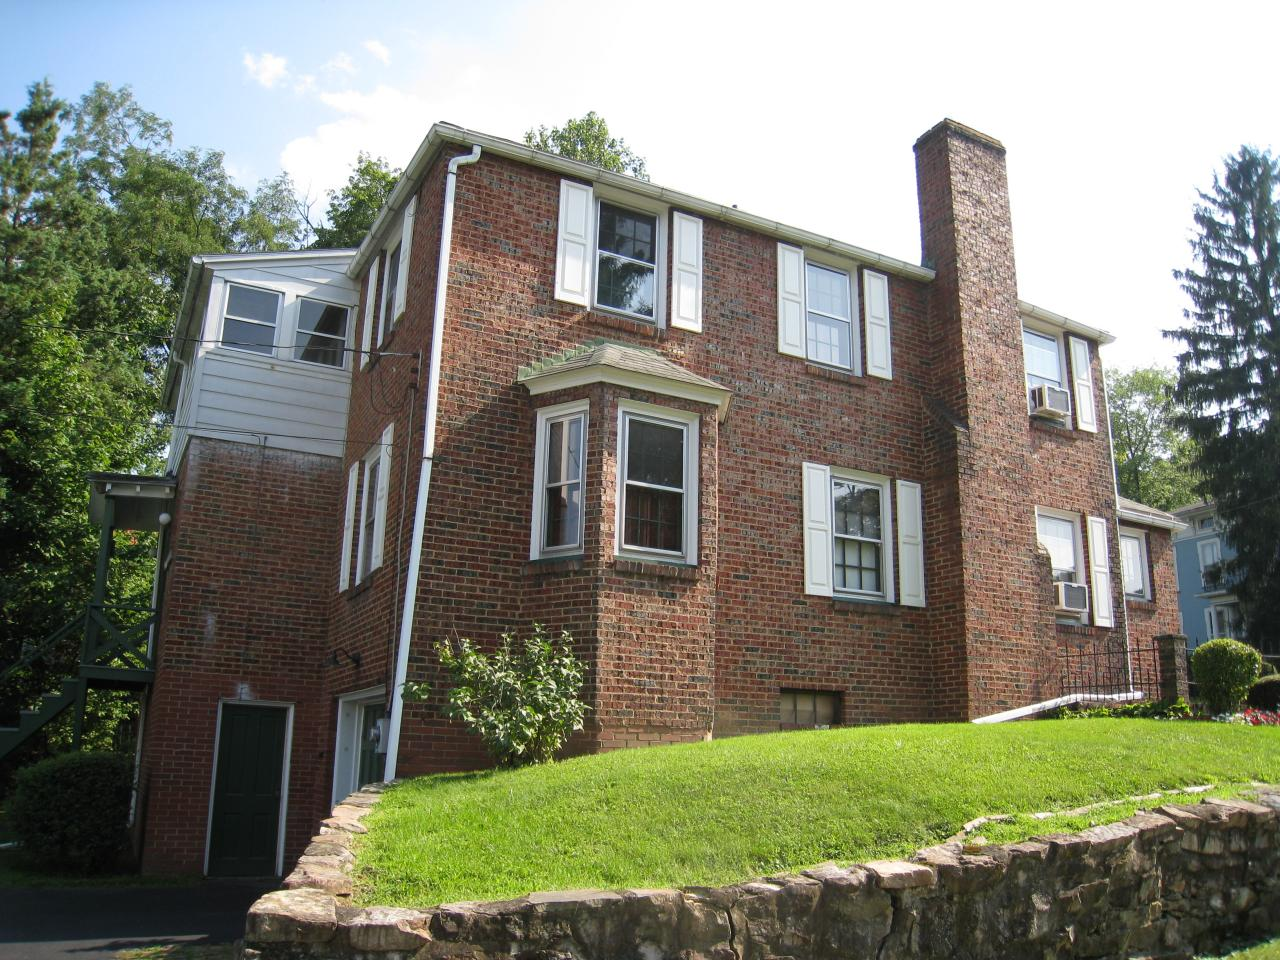 50-52 FAIRVIEW STREET, Lock Haven, PA 17745, ,Multi-units,For sale,FAIRVIEW,WB-92238